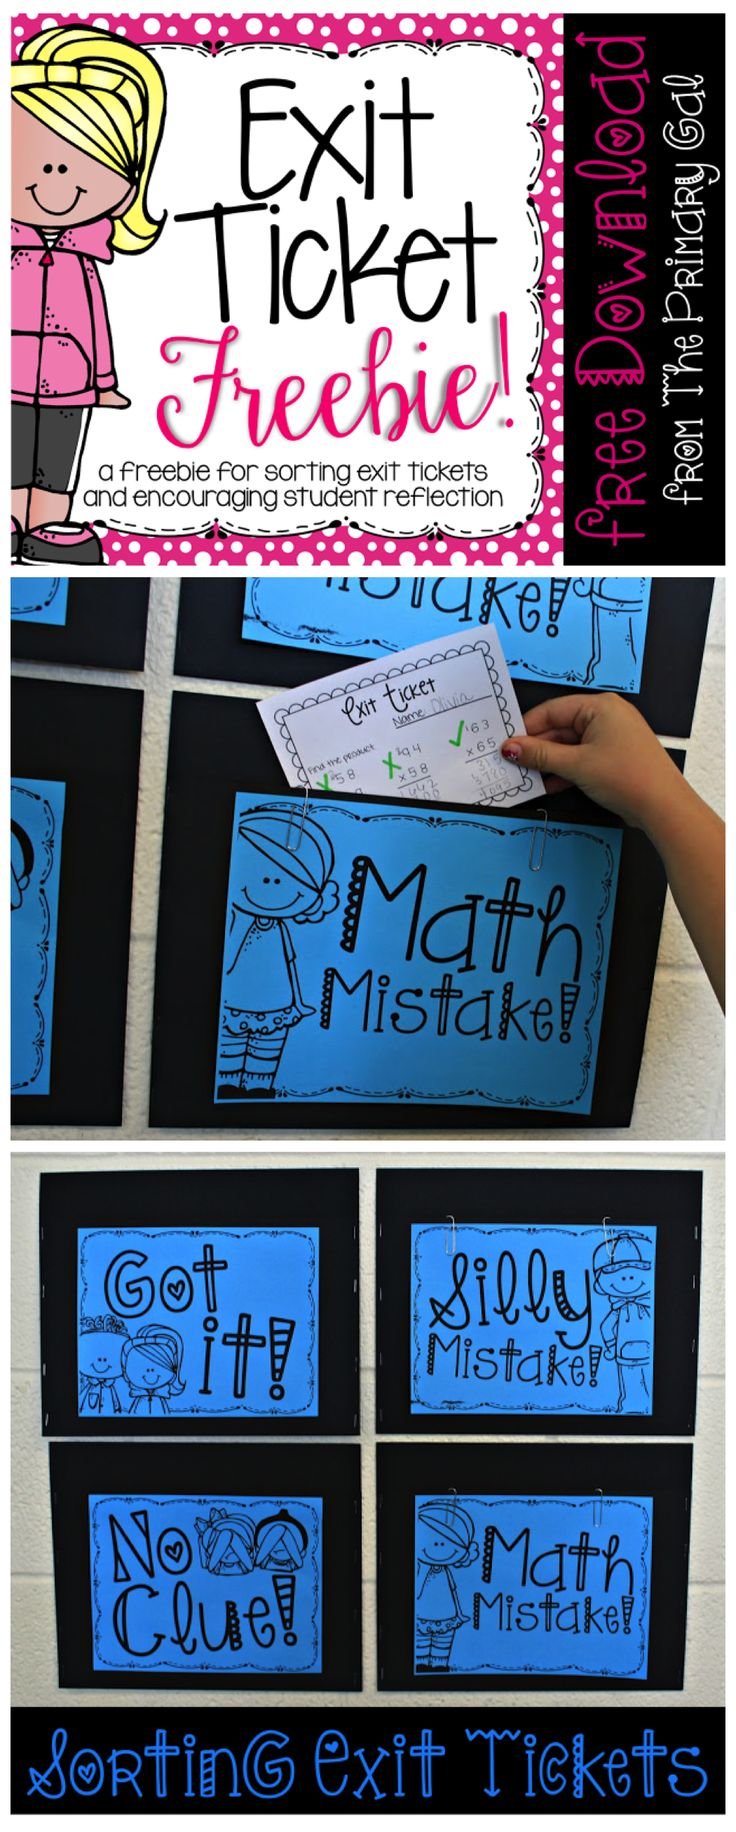 Looking for a FREE Exit Ticket Template for an Exit Ticket Sorting Board? I love having my students reflect on their thinking by sorting their own Exit Tickets each day.